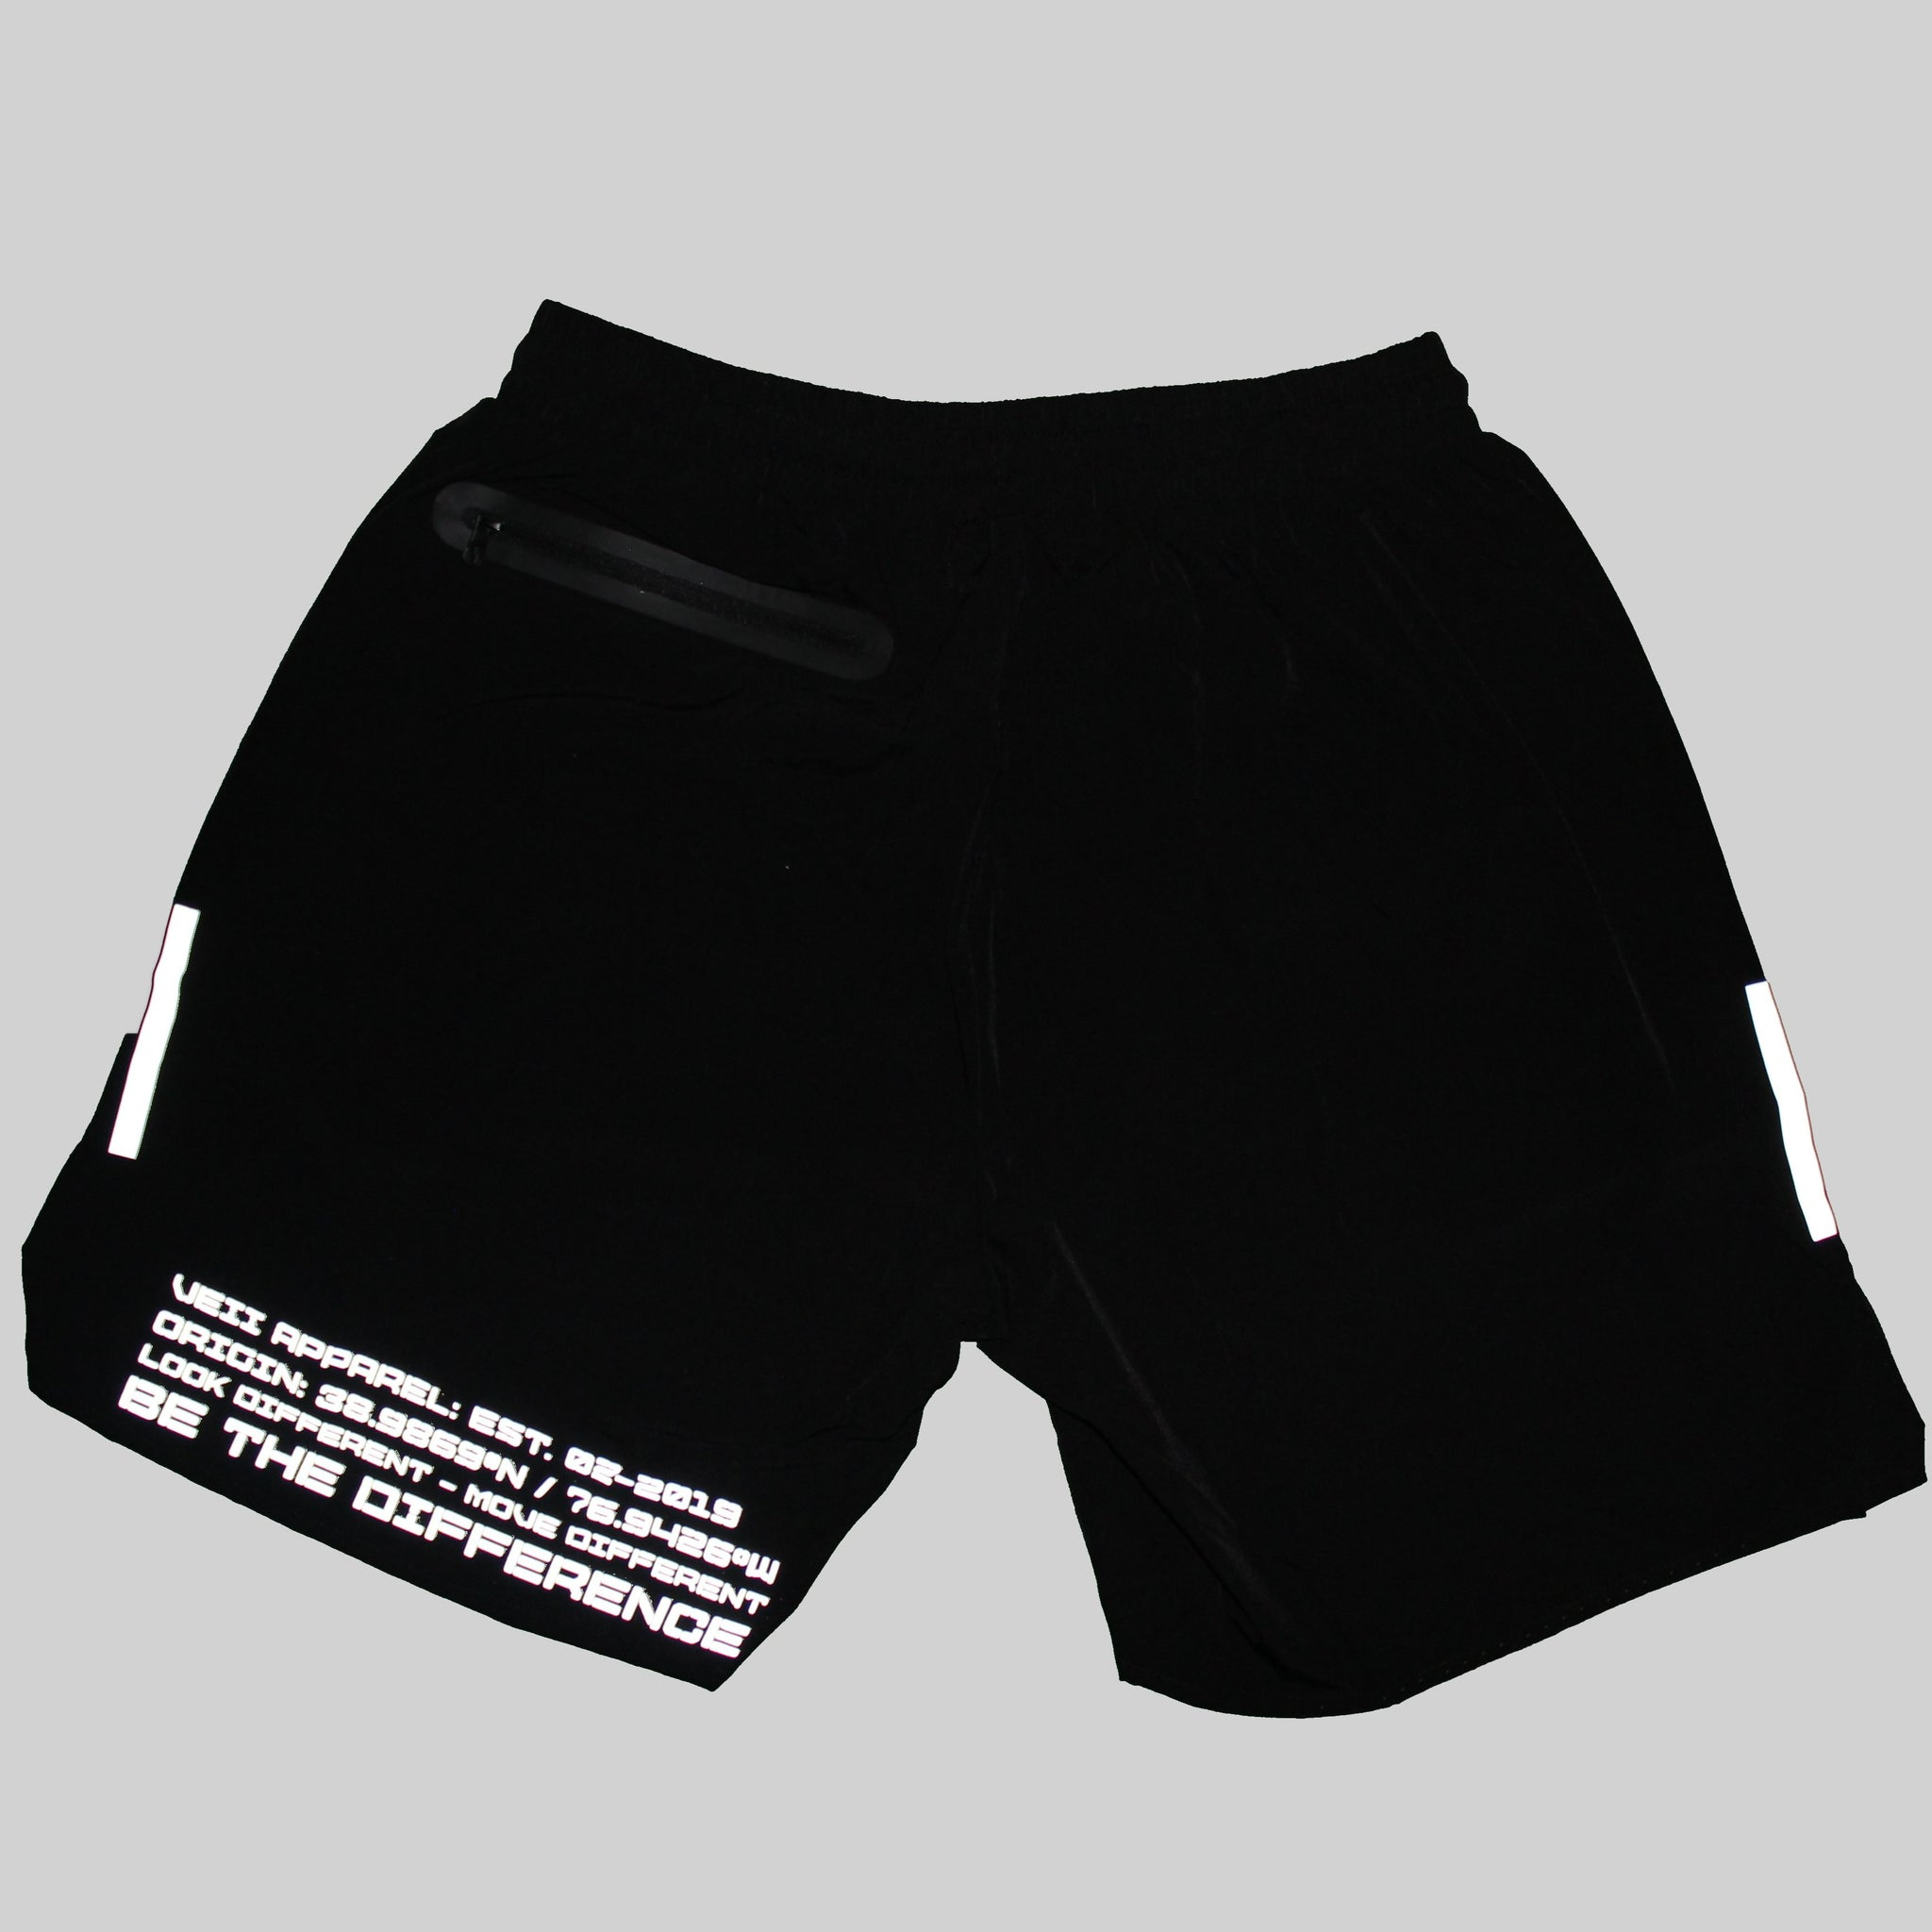 Stealth Shorts V2 - Black